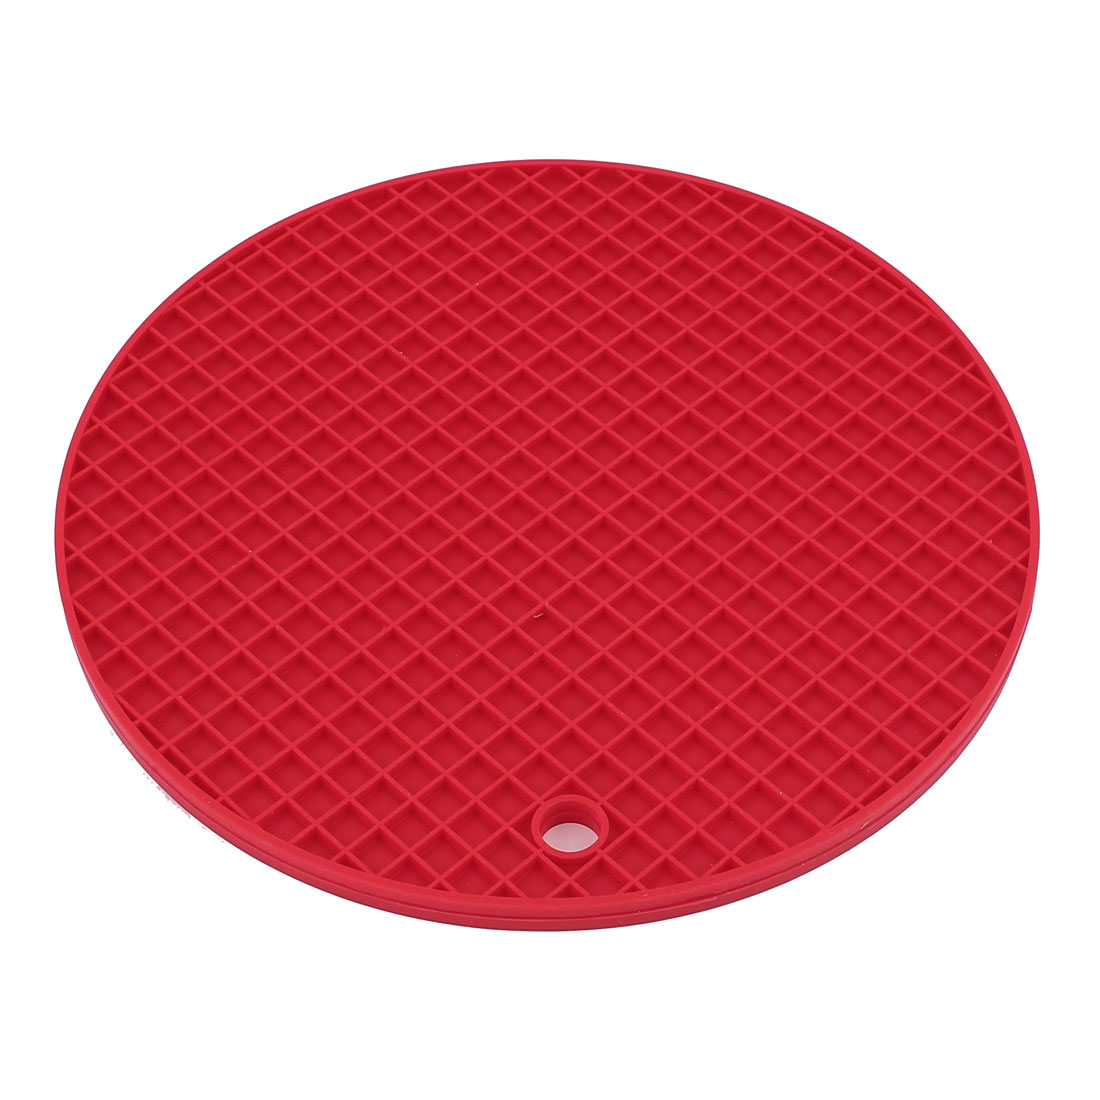 Household Silicone Round Shaped Non-slip Pot Tableware Holder Heat Resistant Mat Red